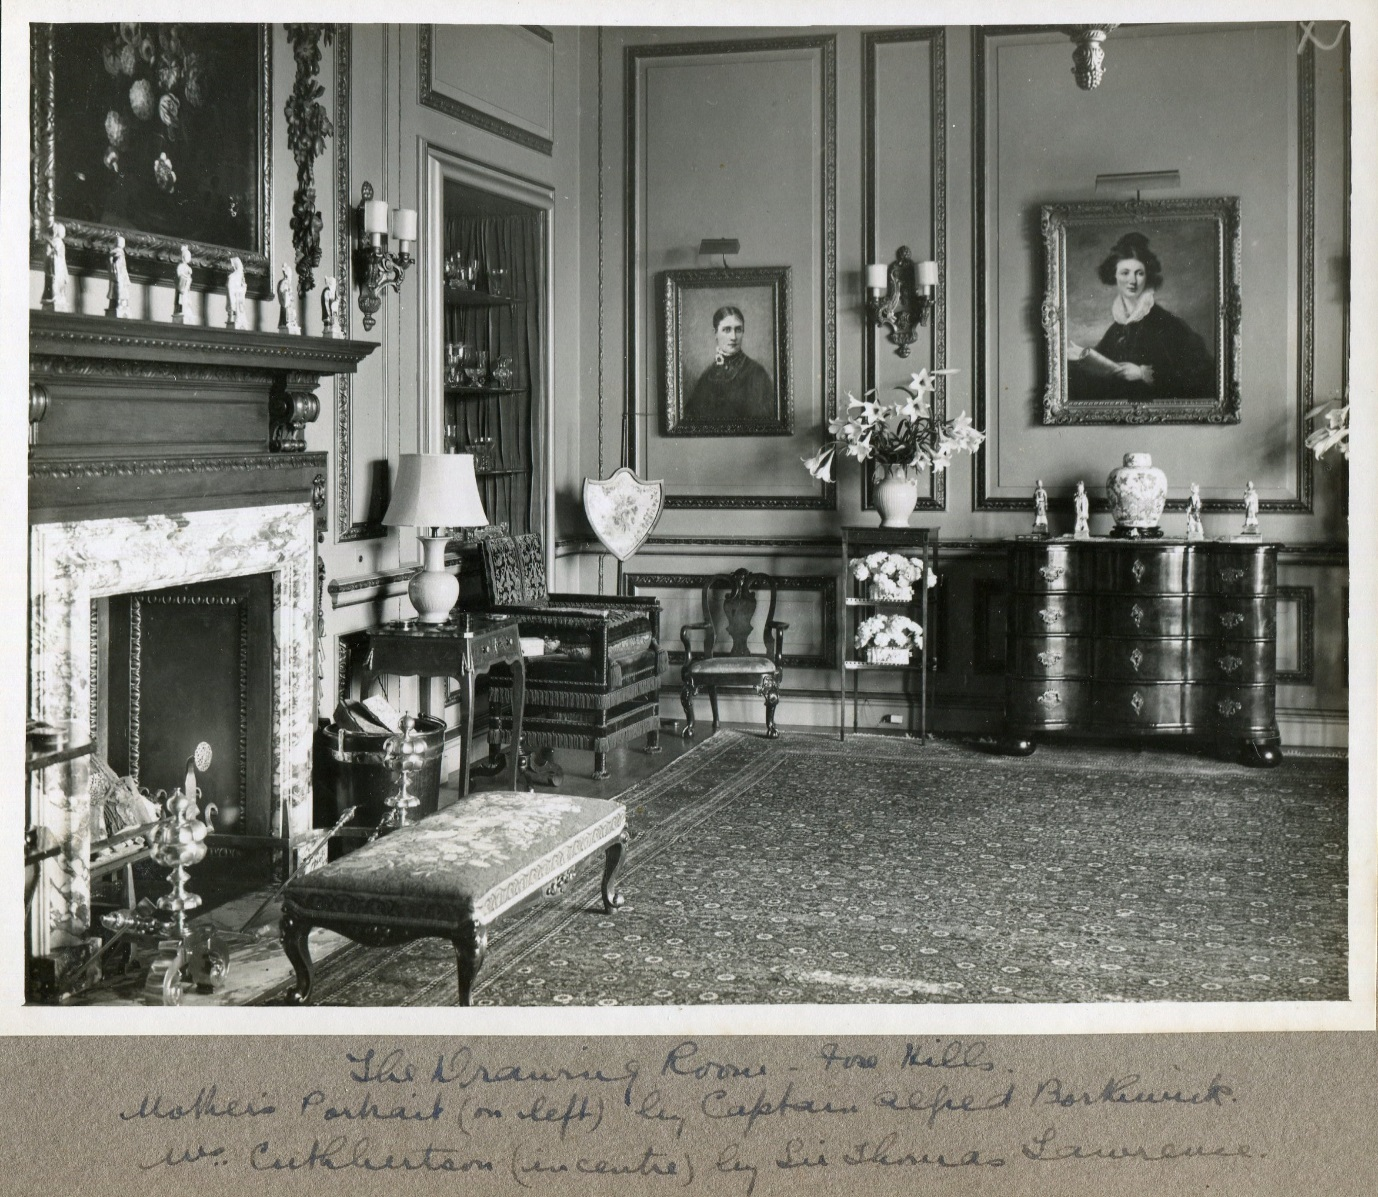 C:\Users\Virginia Rundle\Dropbox\VR\Ancestry Stuff\Wise\Drawing Room at Fox Hills.jpg